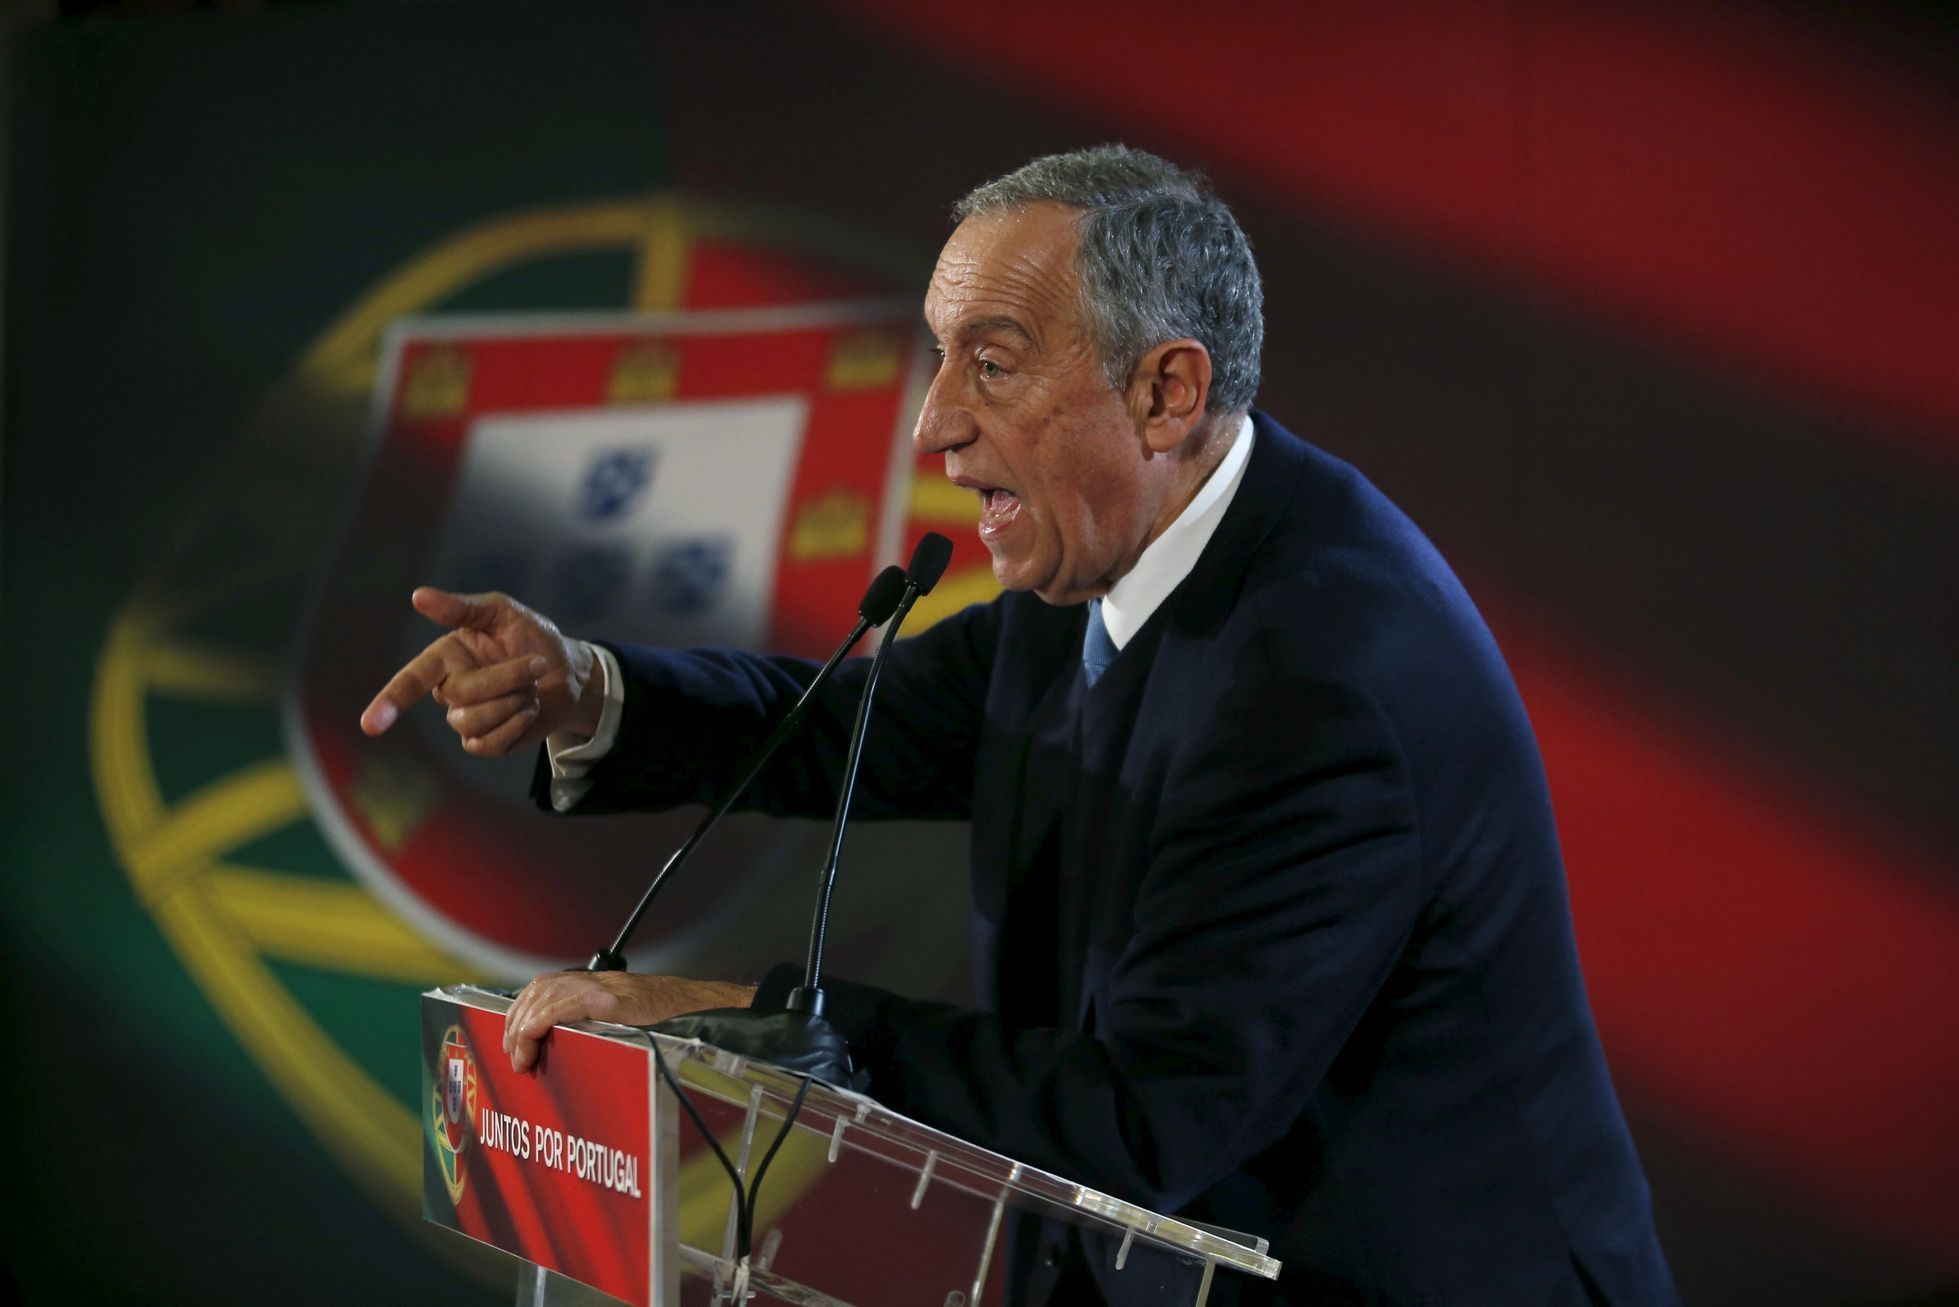 Portugal's presidential candidate Marcelo Rebelo de Sousa attends an election campaign event in Lourinha